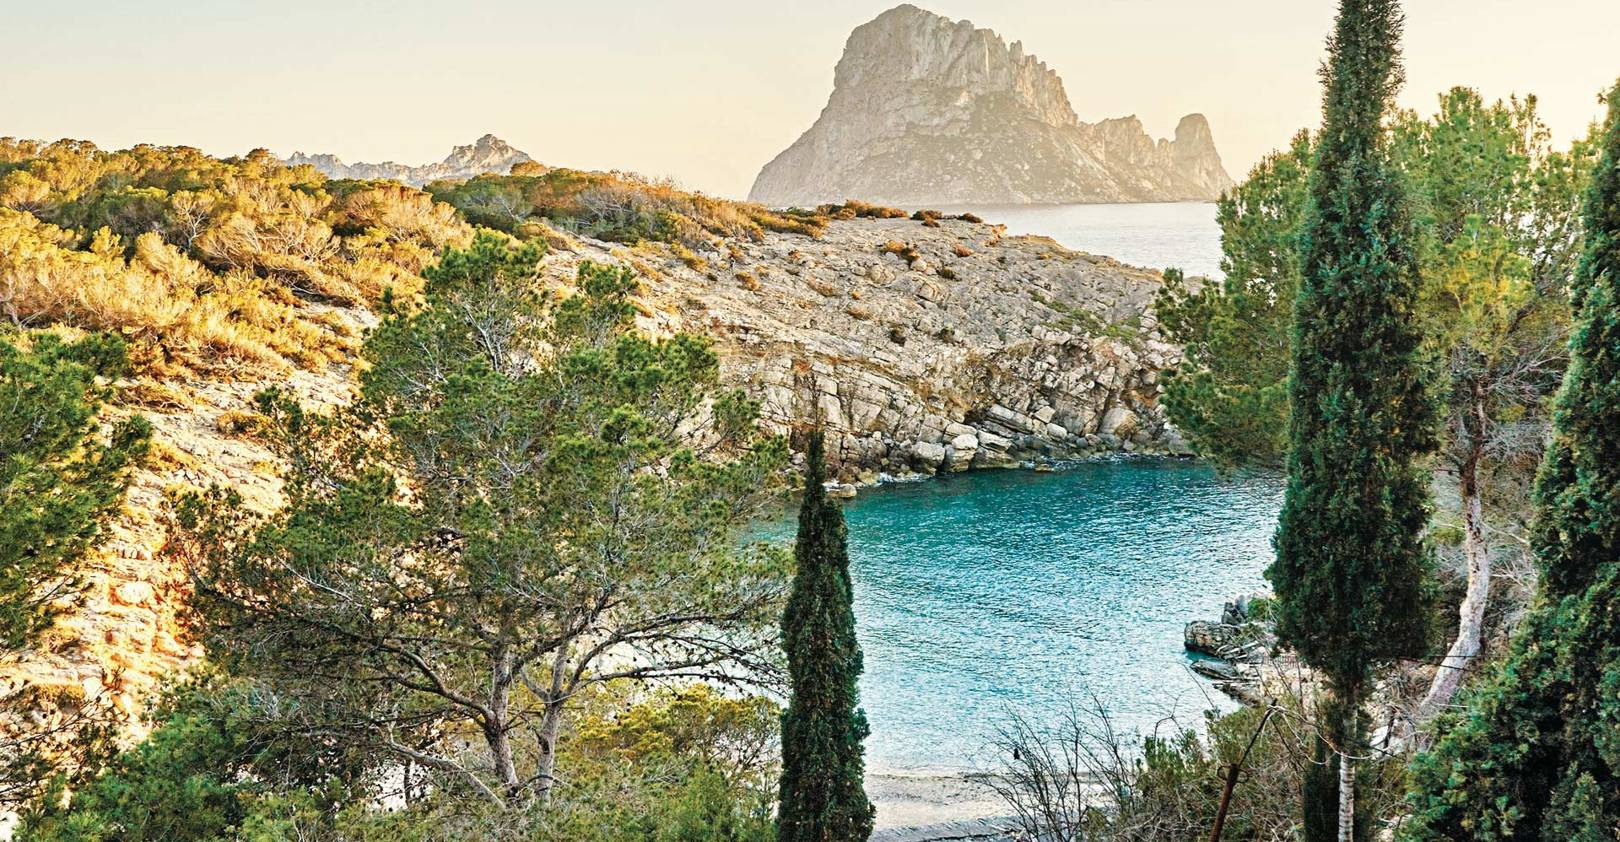 75 dreamy pictures of Spain